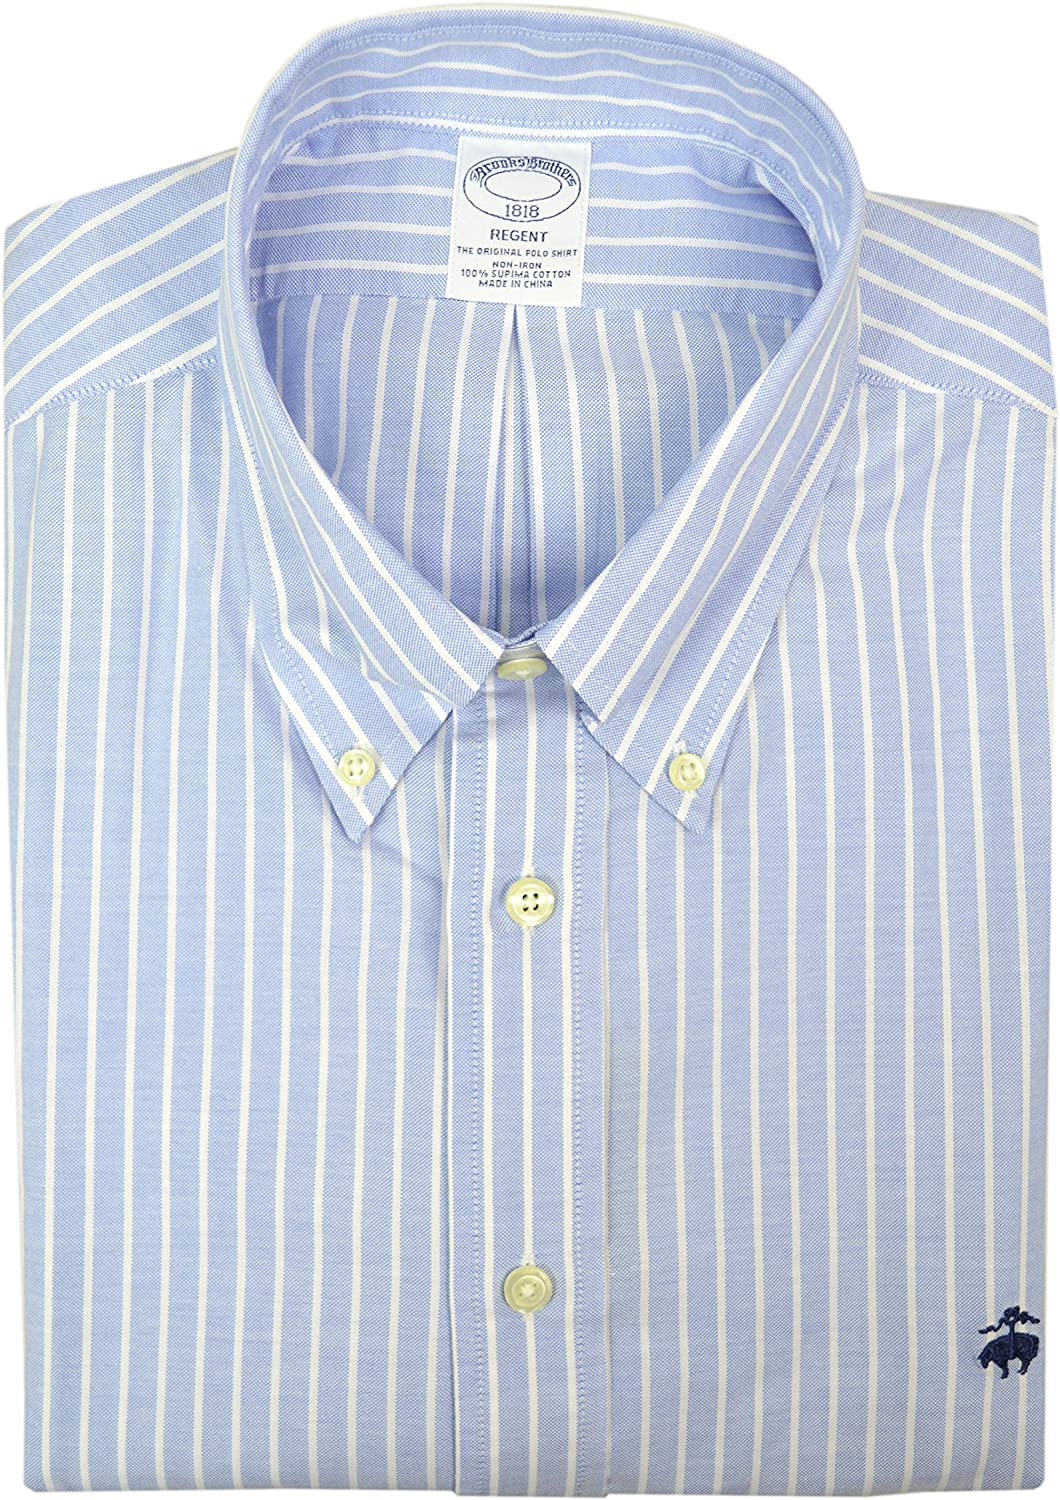 Brooks Brothers Mens Regent Fit 73047 All Cotton The Original Polo Button Down Shirt Light Blue White Striped